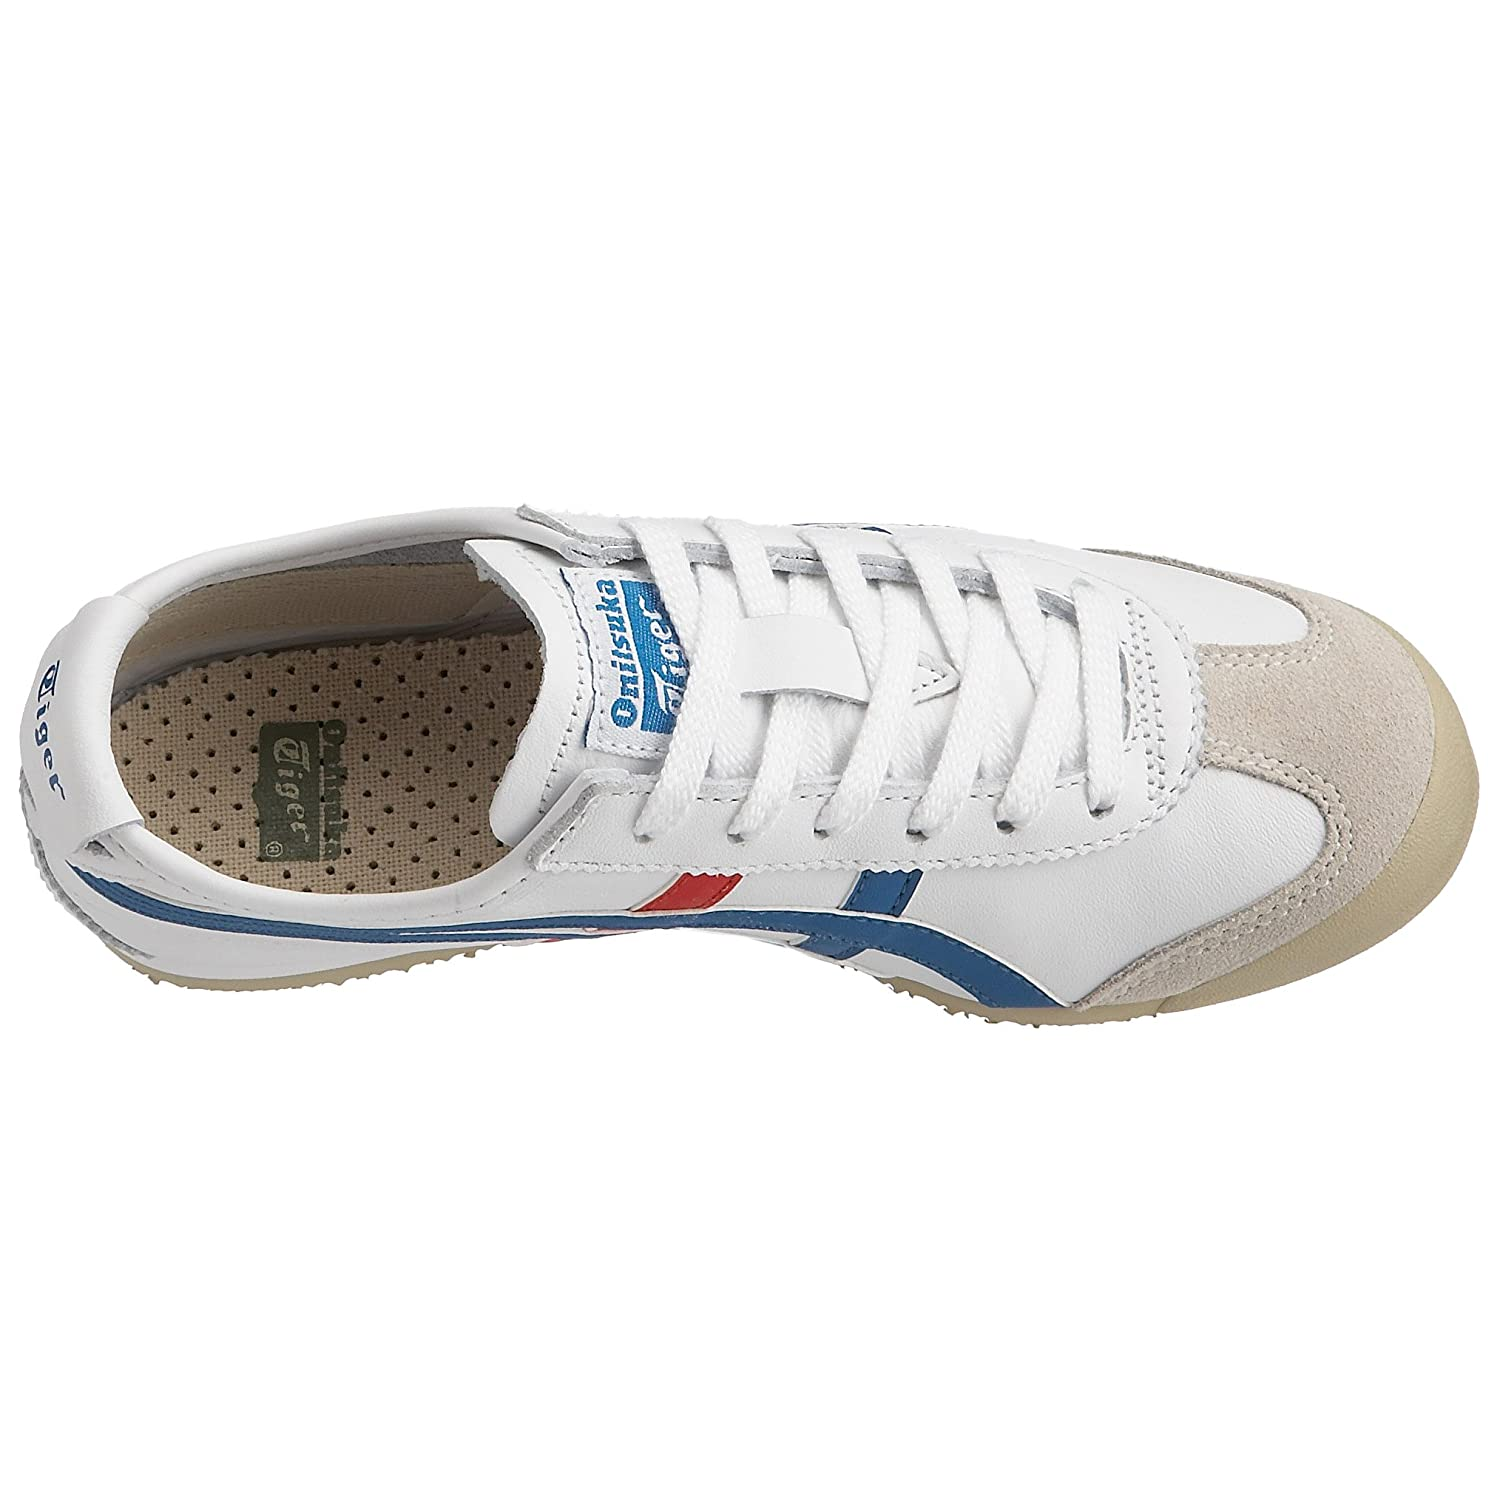 Onitsuka Tiger Mexico 66 Fashion Sneaker B000B2MEUG 12 M Men's US/13.5 Women's M US|White/Blue